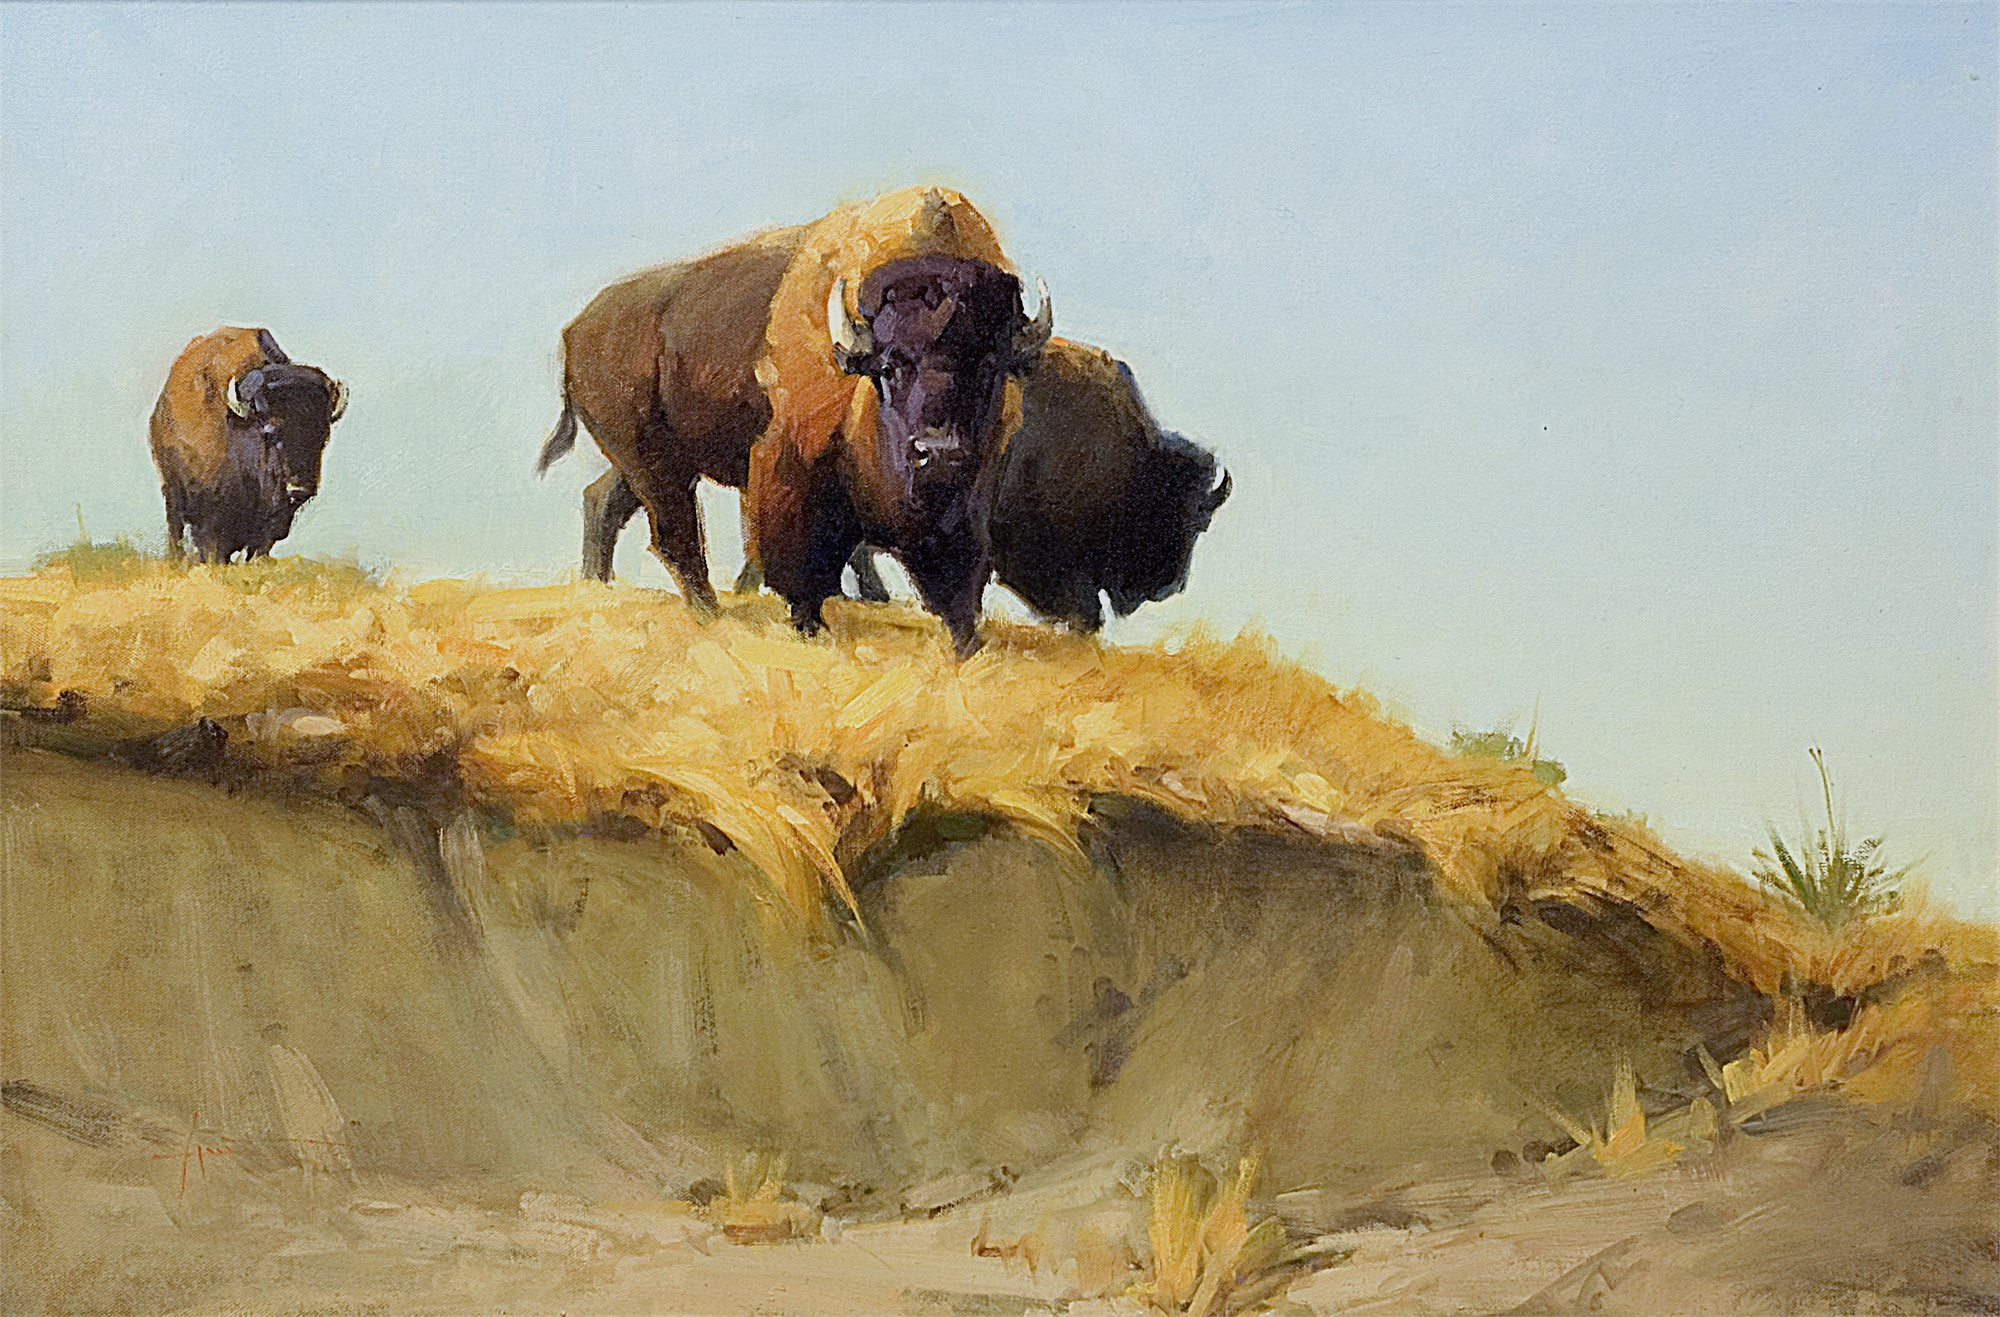 Buffalo Ridge by Lani Vlaanderen